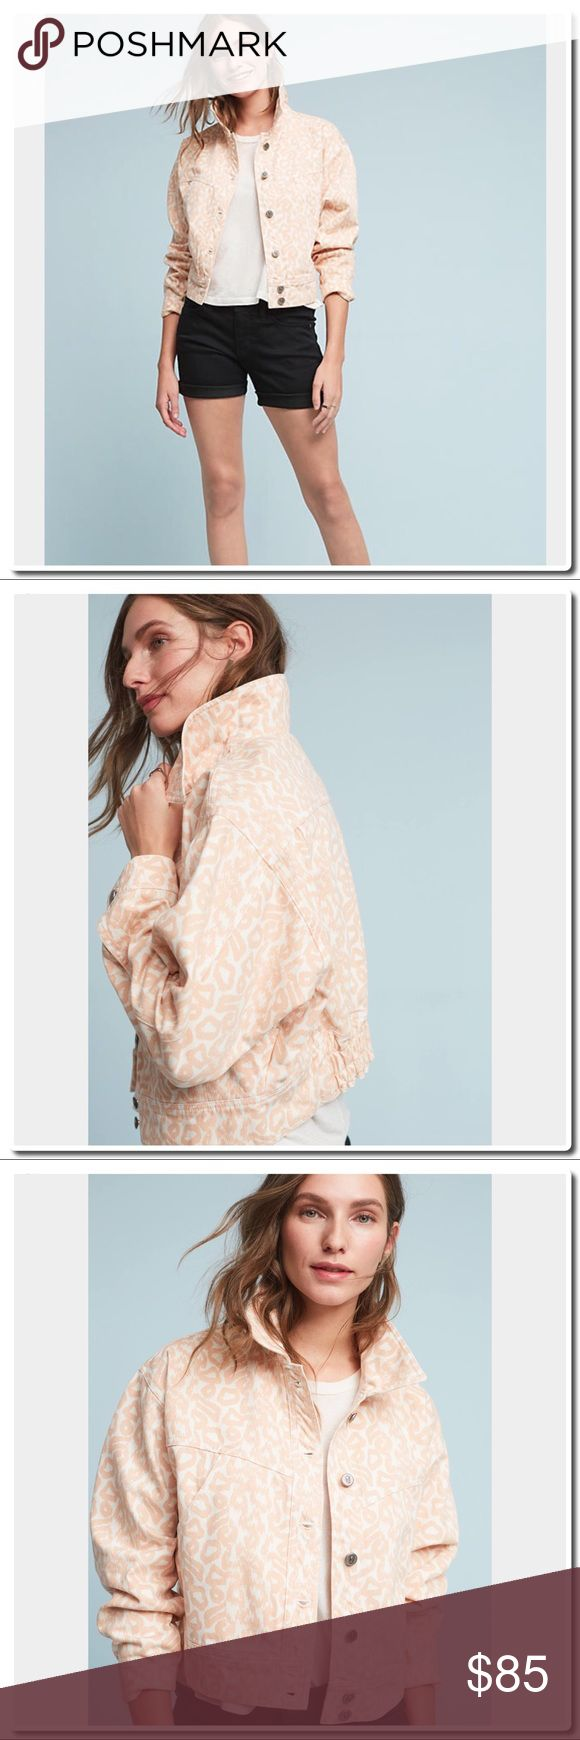 Anthropologie Pilcro Printed Trucker Jacket The classic trucker silhouette gets a warm weather update in this spring-ready print. An Anthropologie-exclusive from Pilcro.  Cotton Slant pockets Button front Machine wash Turkey Anthropologie Jackets & Coats